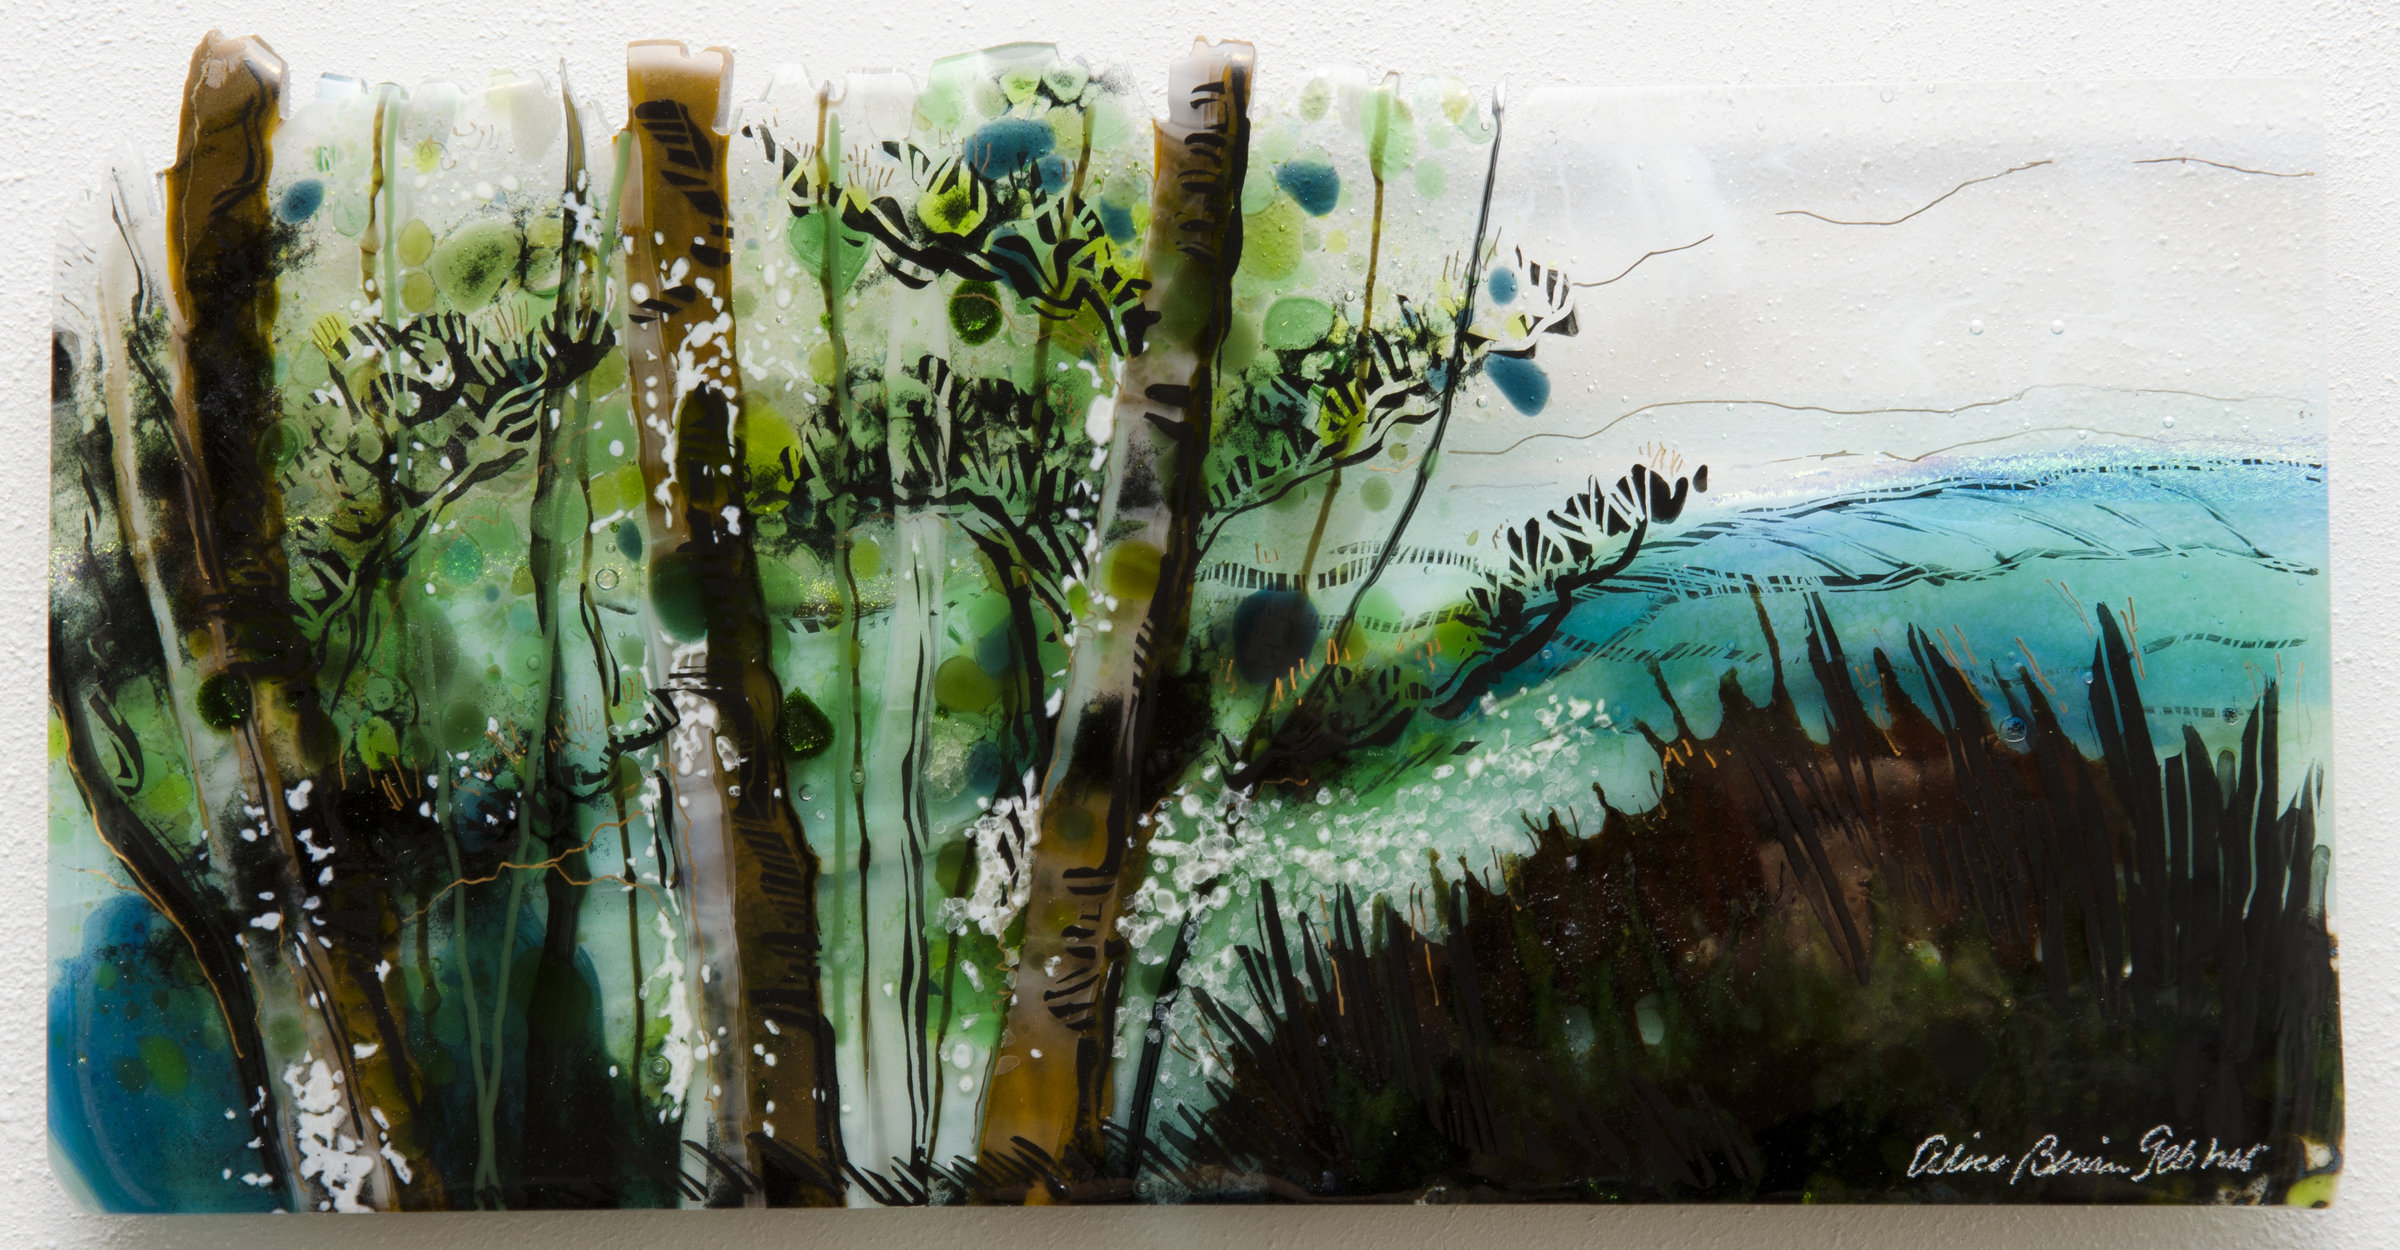 Wall Art For Glass : New england view by alice benvie gebhart art glass wall